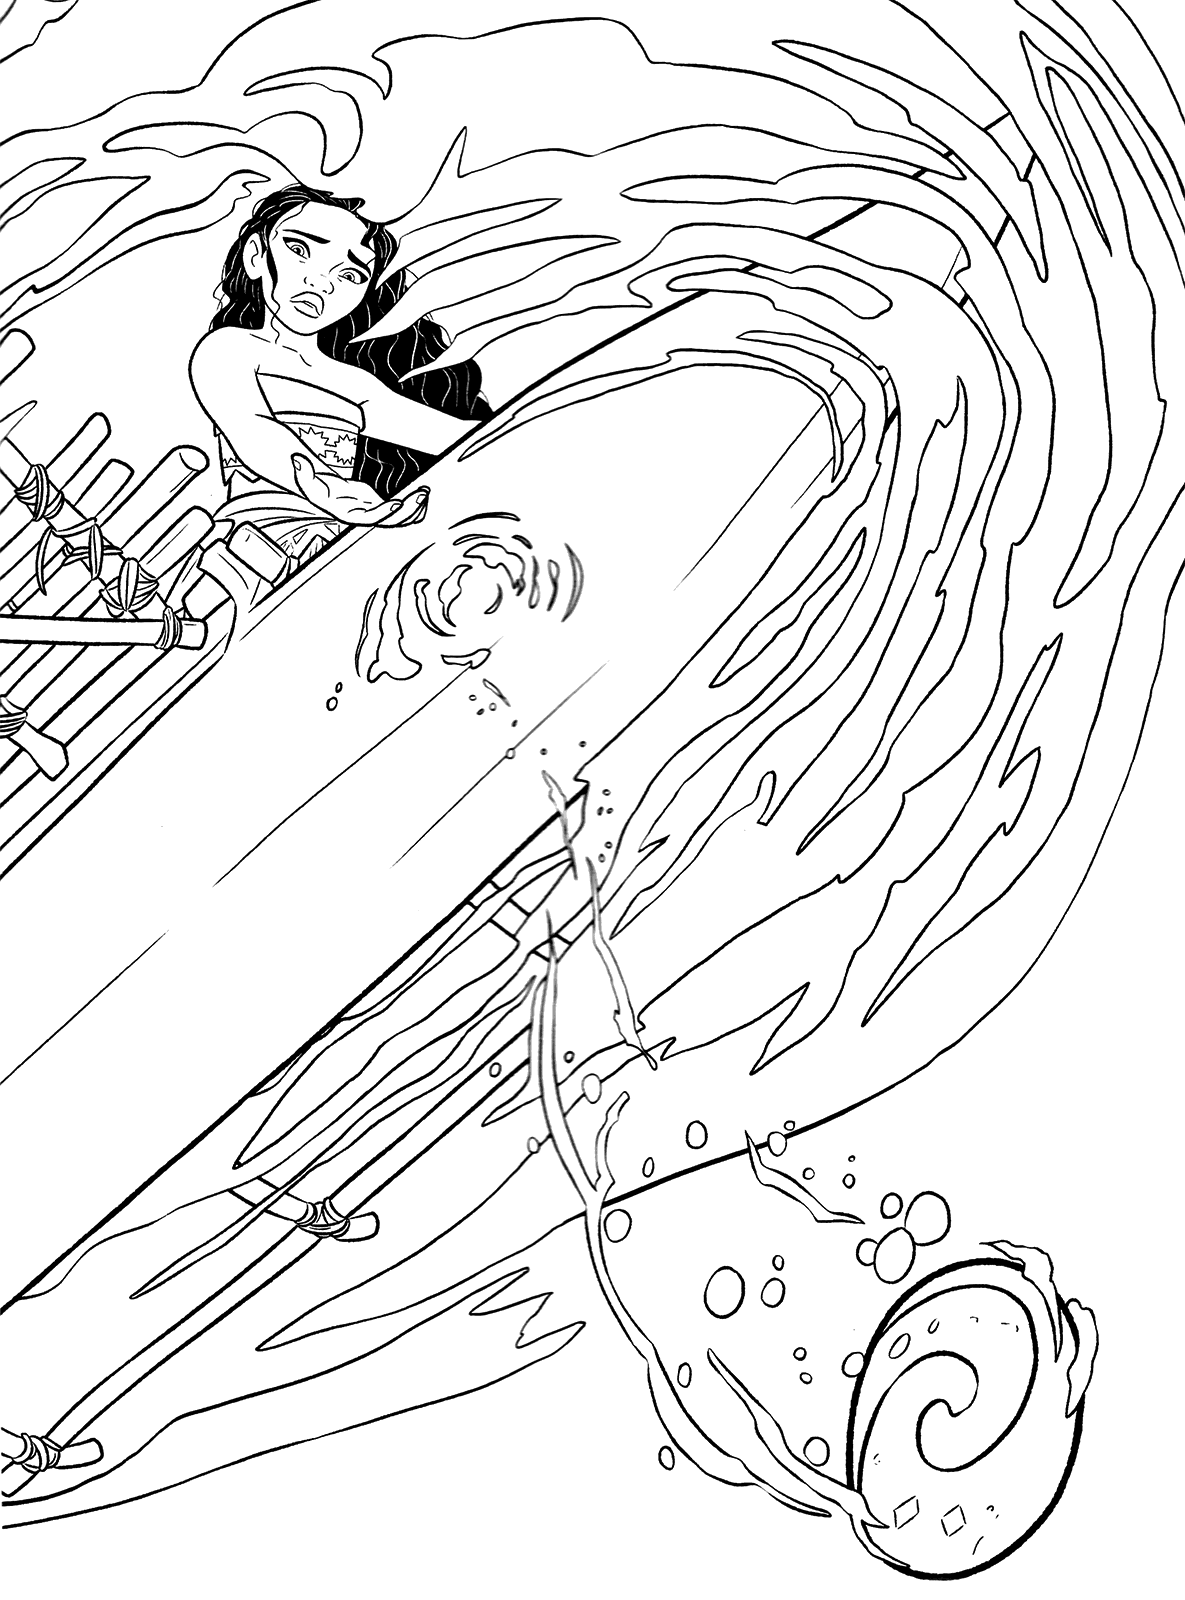 Simple Moana Coloring Page To Download For Free